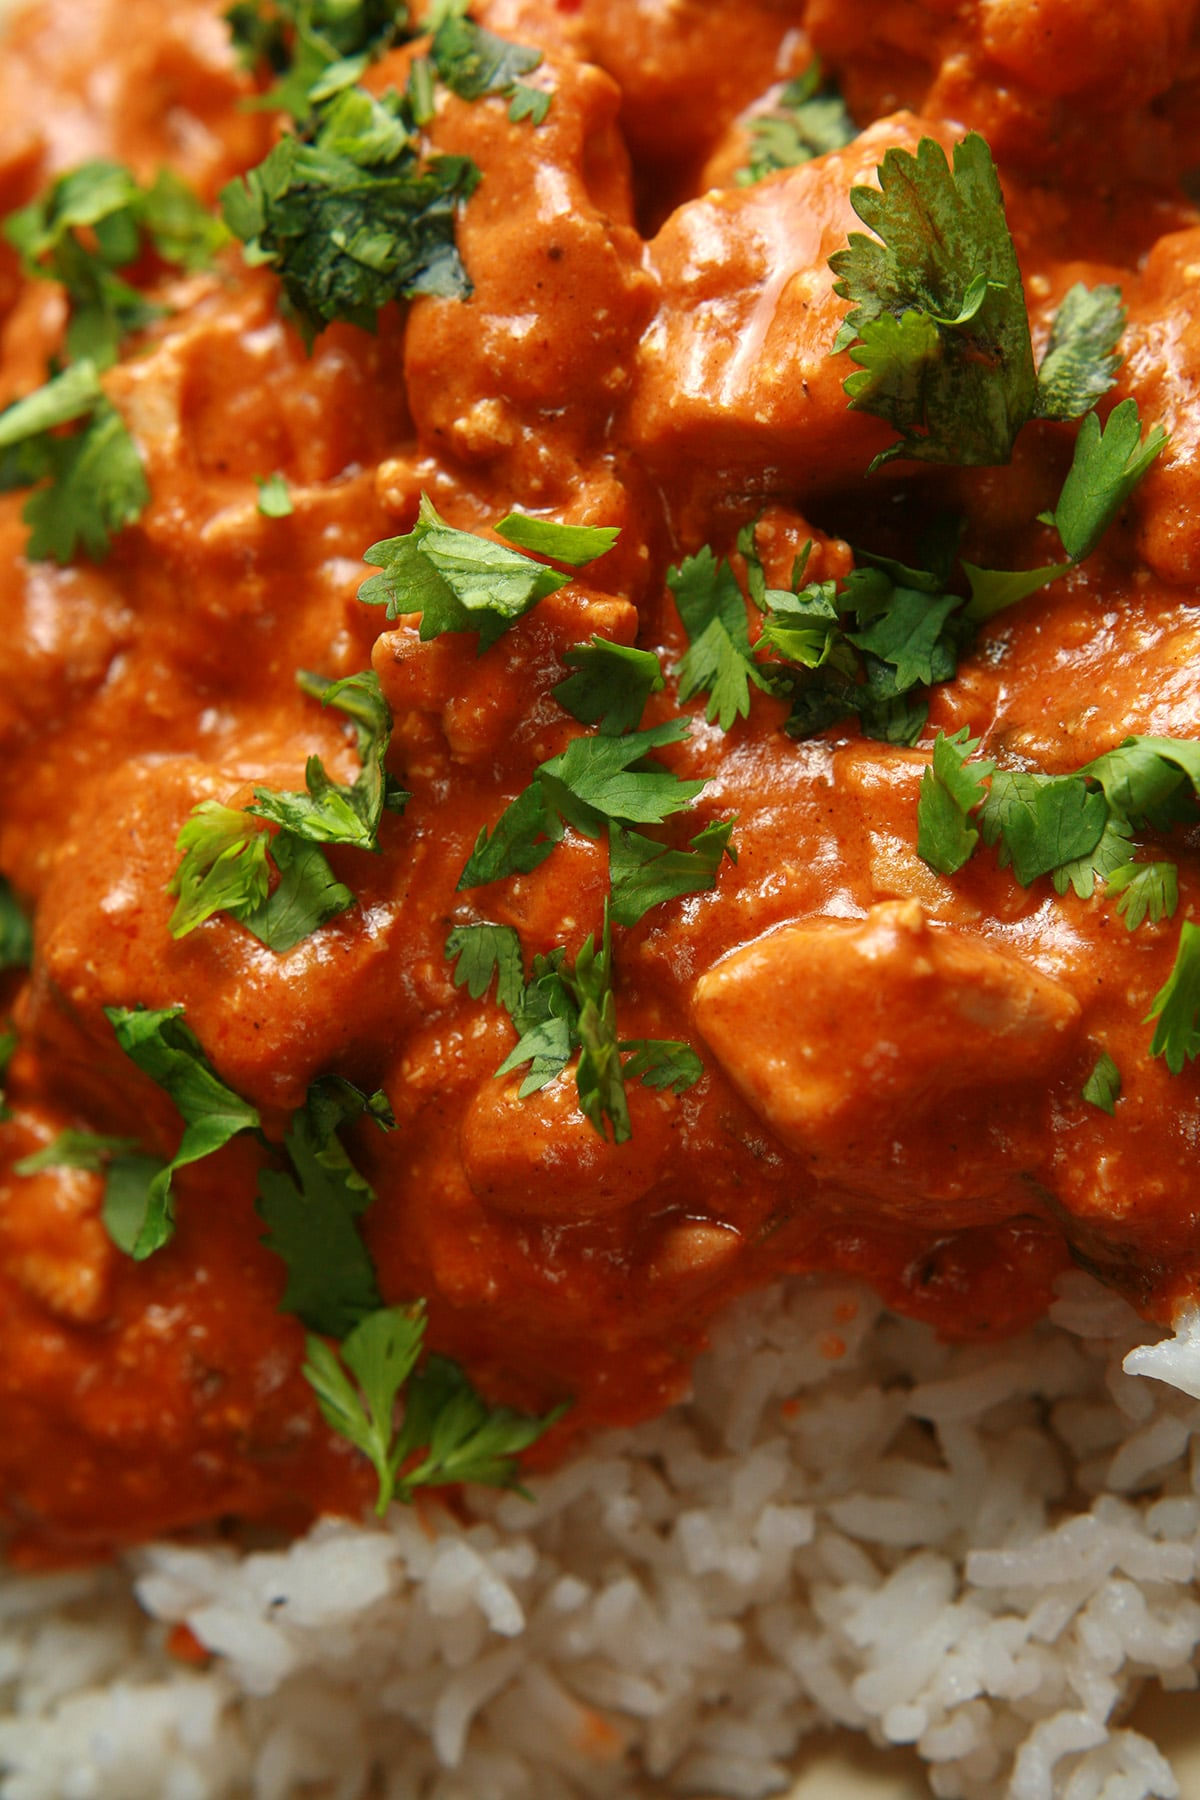 A close up view of Butter Chicken - Chicken in a  creamy tomato sauce.